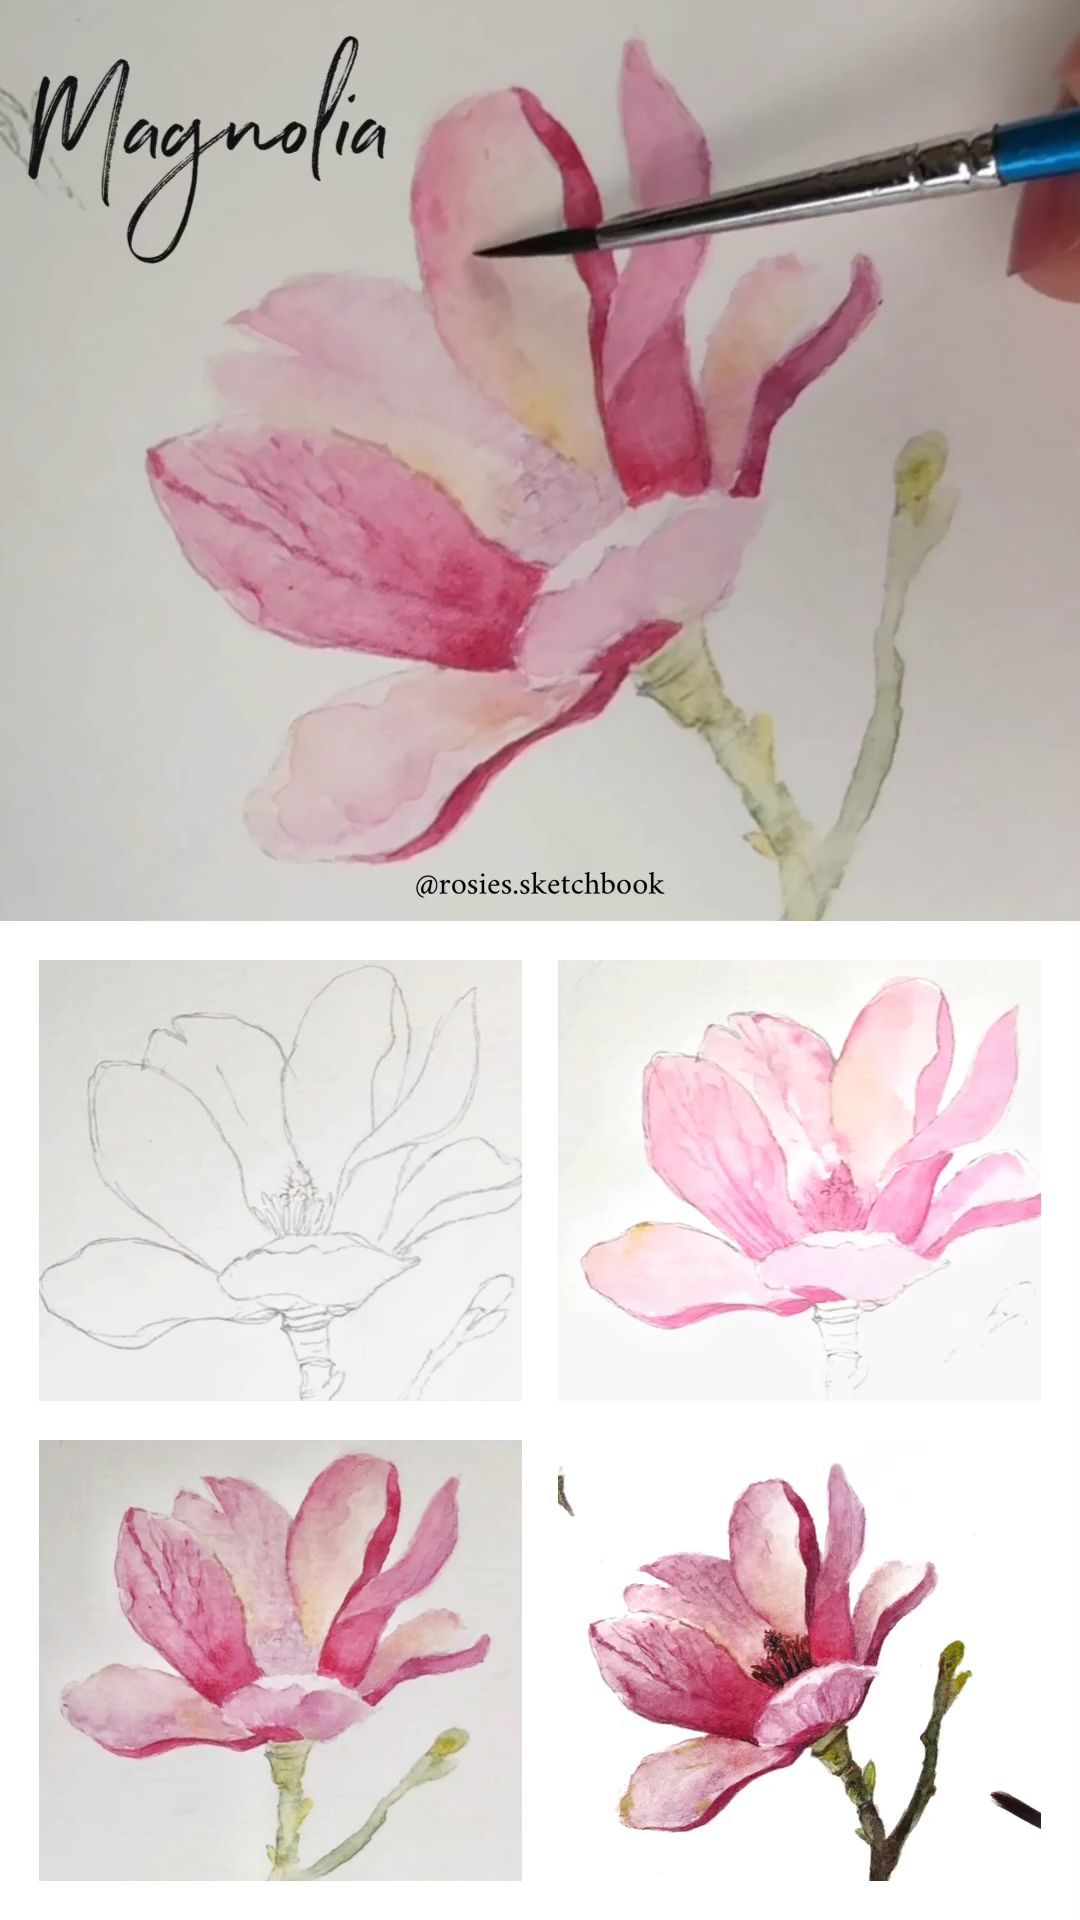 Mini Magnolia Flower Tutorial With Step By Step Process Photos Glower Magnolia In 2020 Watercolor Flowers Tutorial Watercolor Flowers Paintings Watercolor Flowers